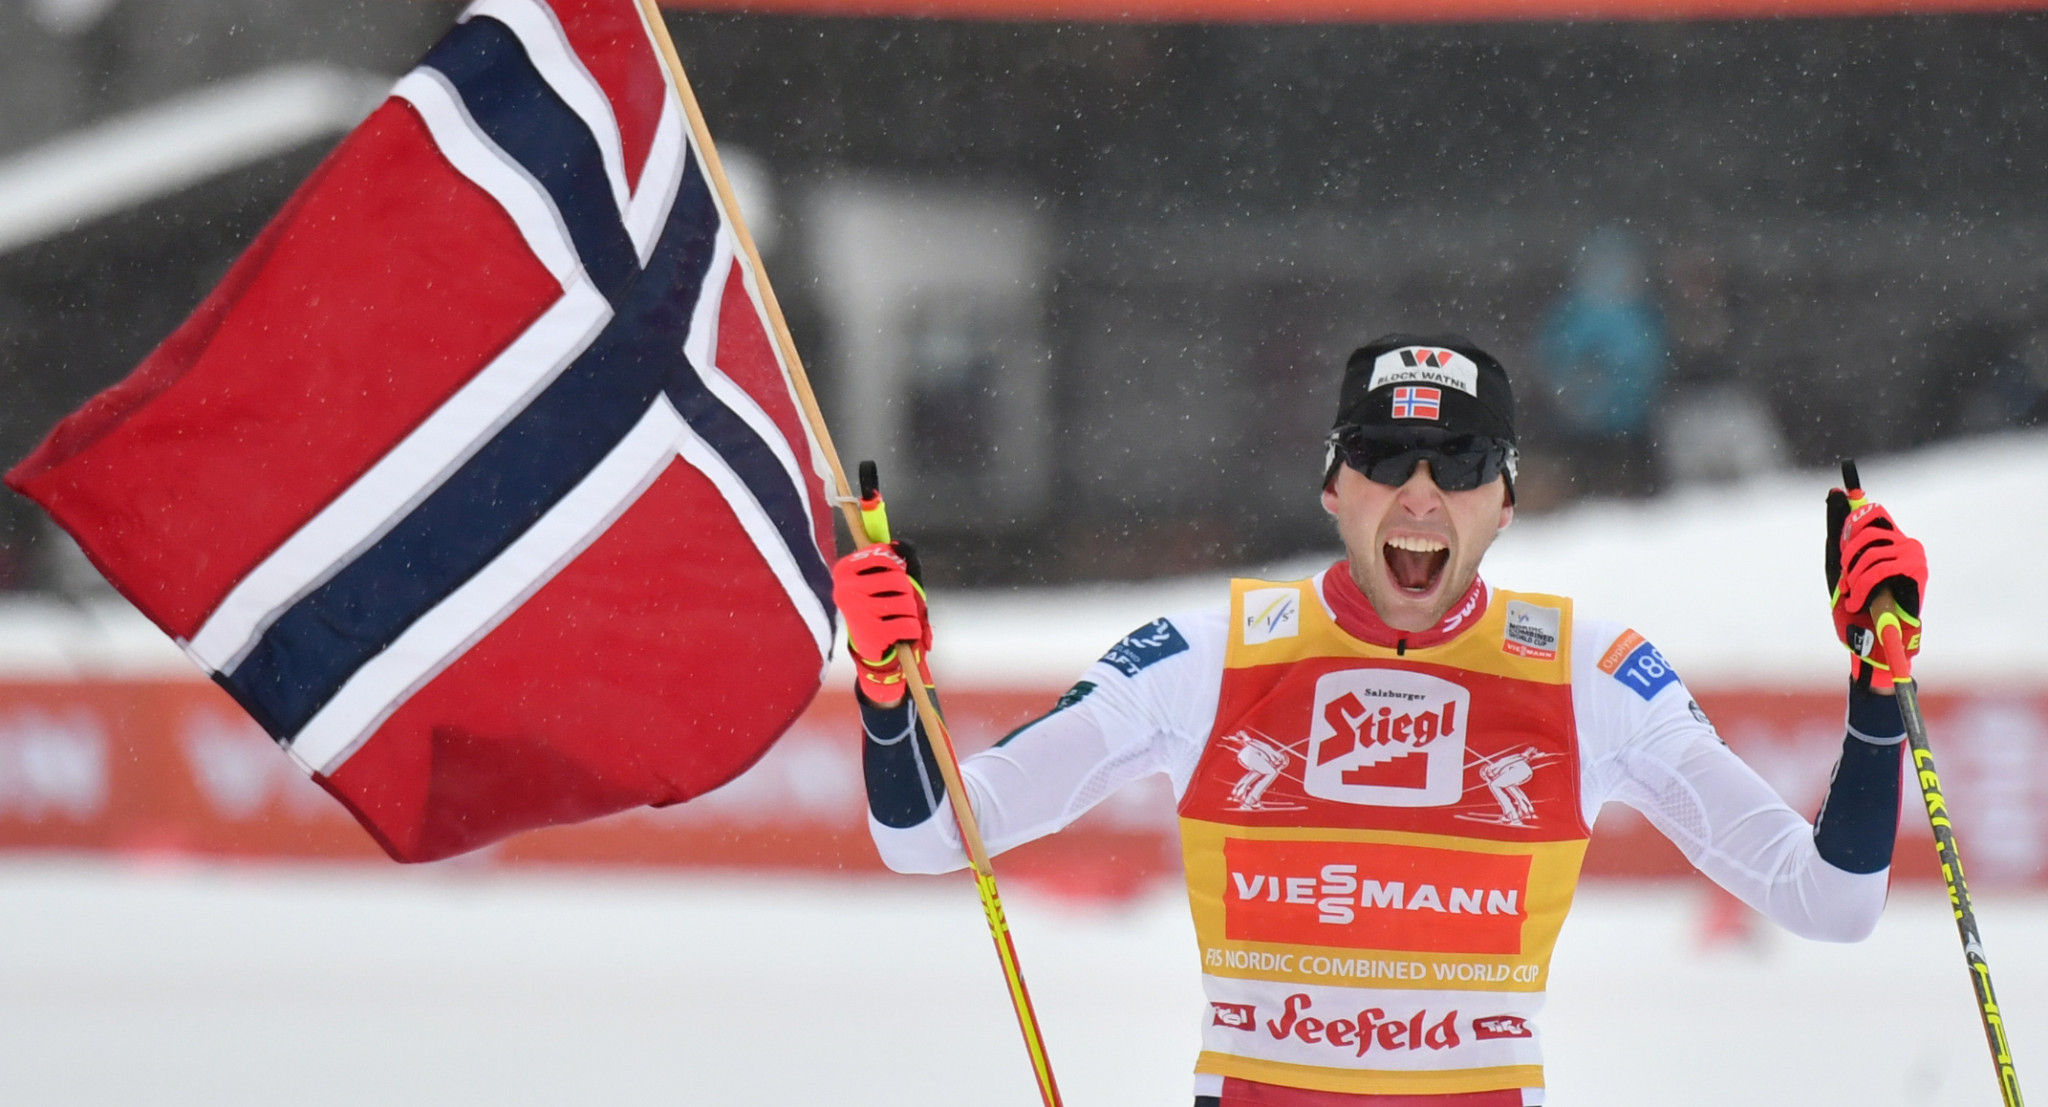 Oslo ready to host FIS Nordic Combined World Cup stage